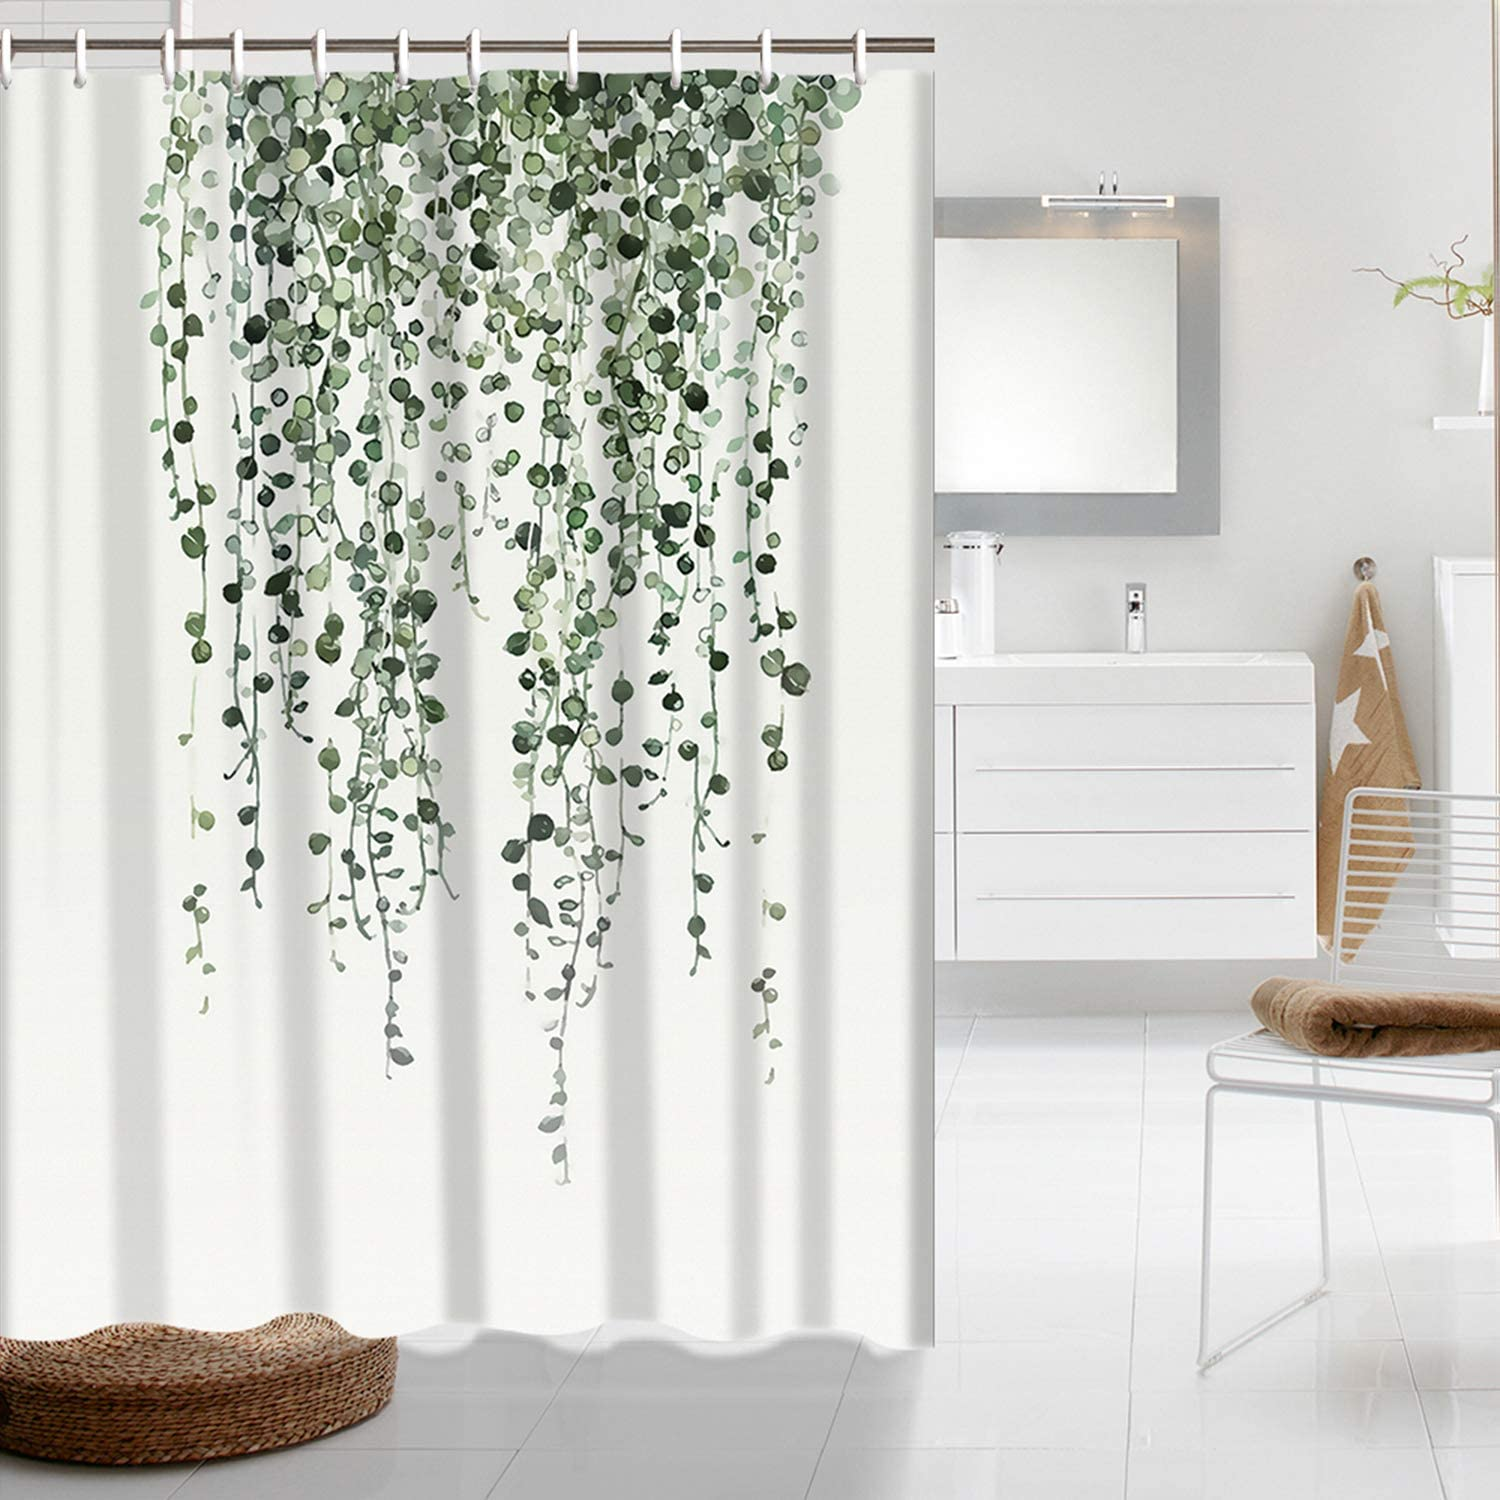 Shower Curtain Green Eucalyptus Leaves Bathroom Curtain Blurry Watercolor Plants Floral Shower Curtain Waterproof Bathroom Decor Fabric Shower Curtain Set with 10 Hooks